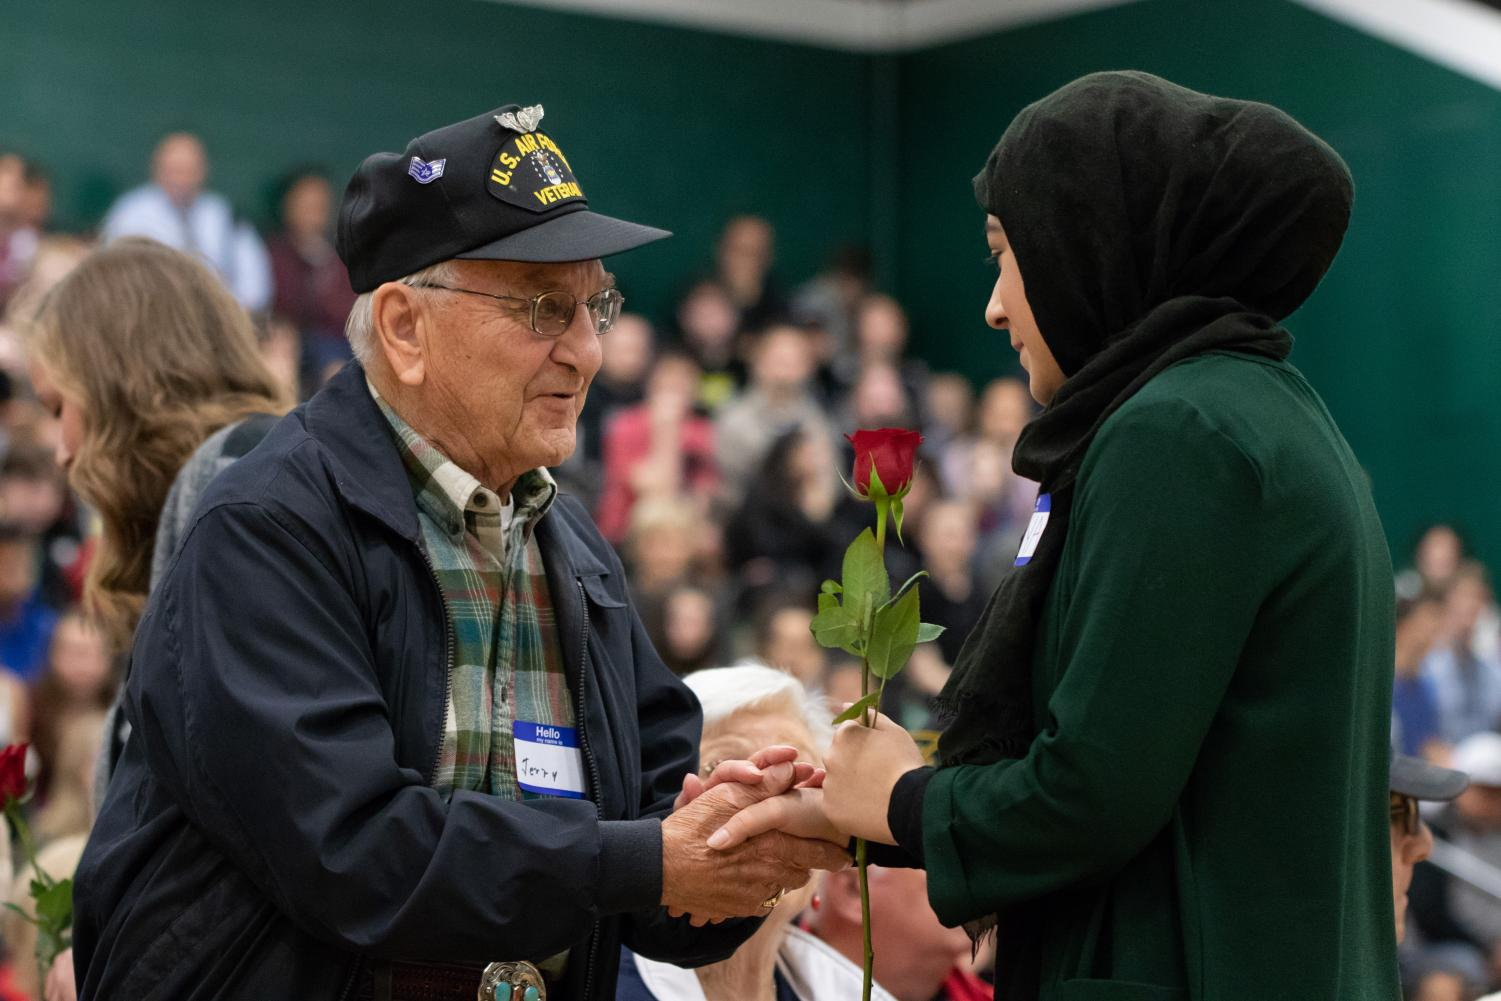 At the Veterans Day Assembly each veteran in attendance receives a rose.